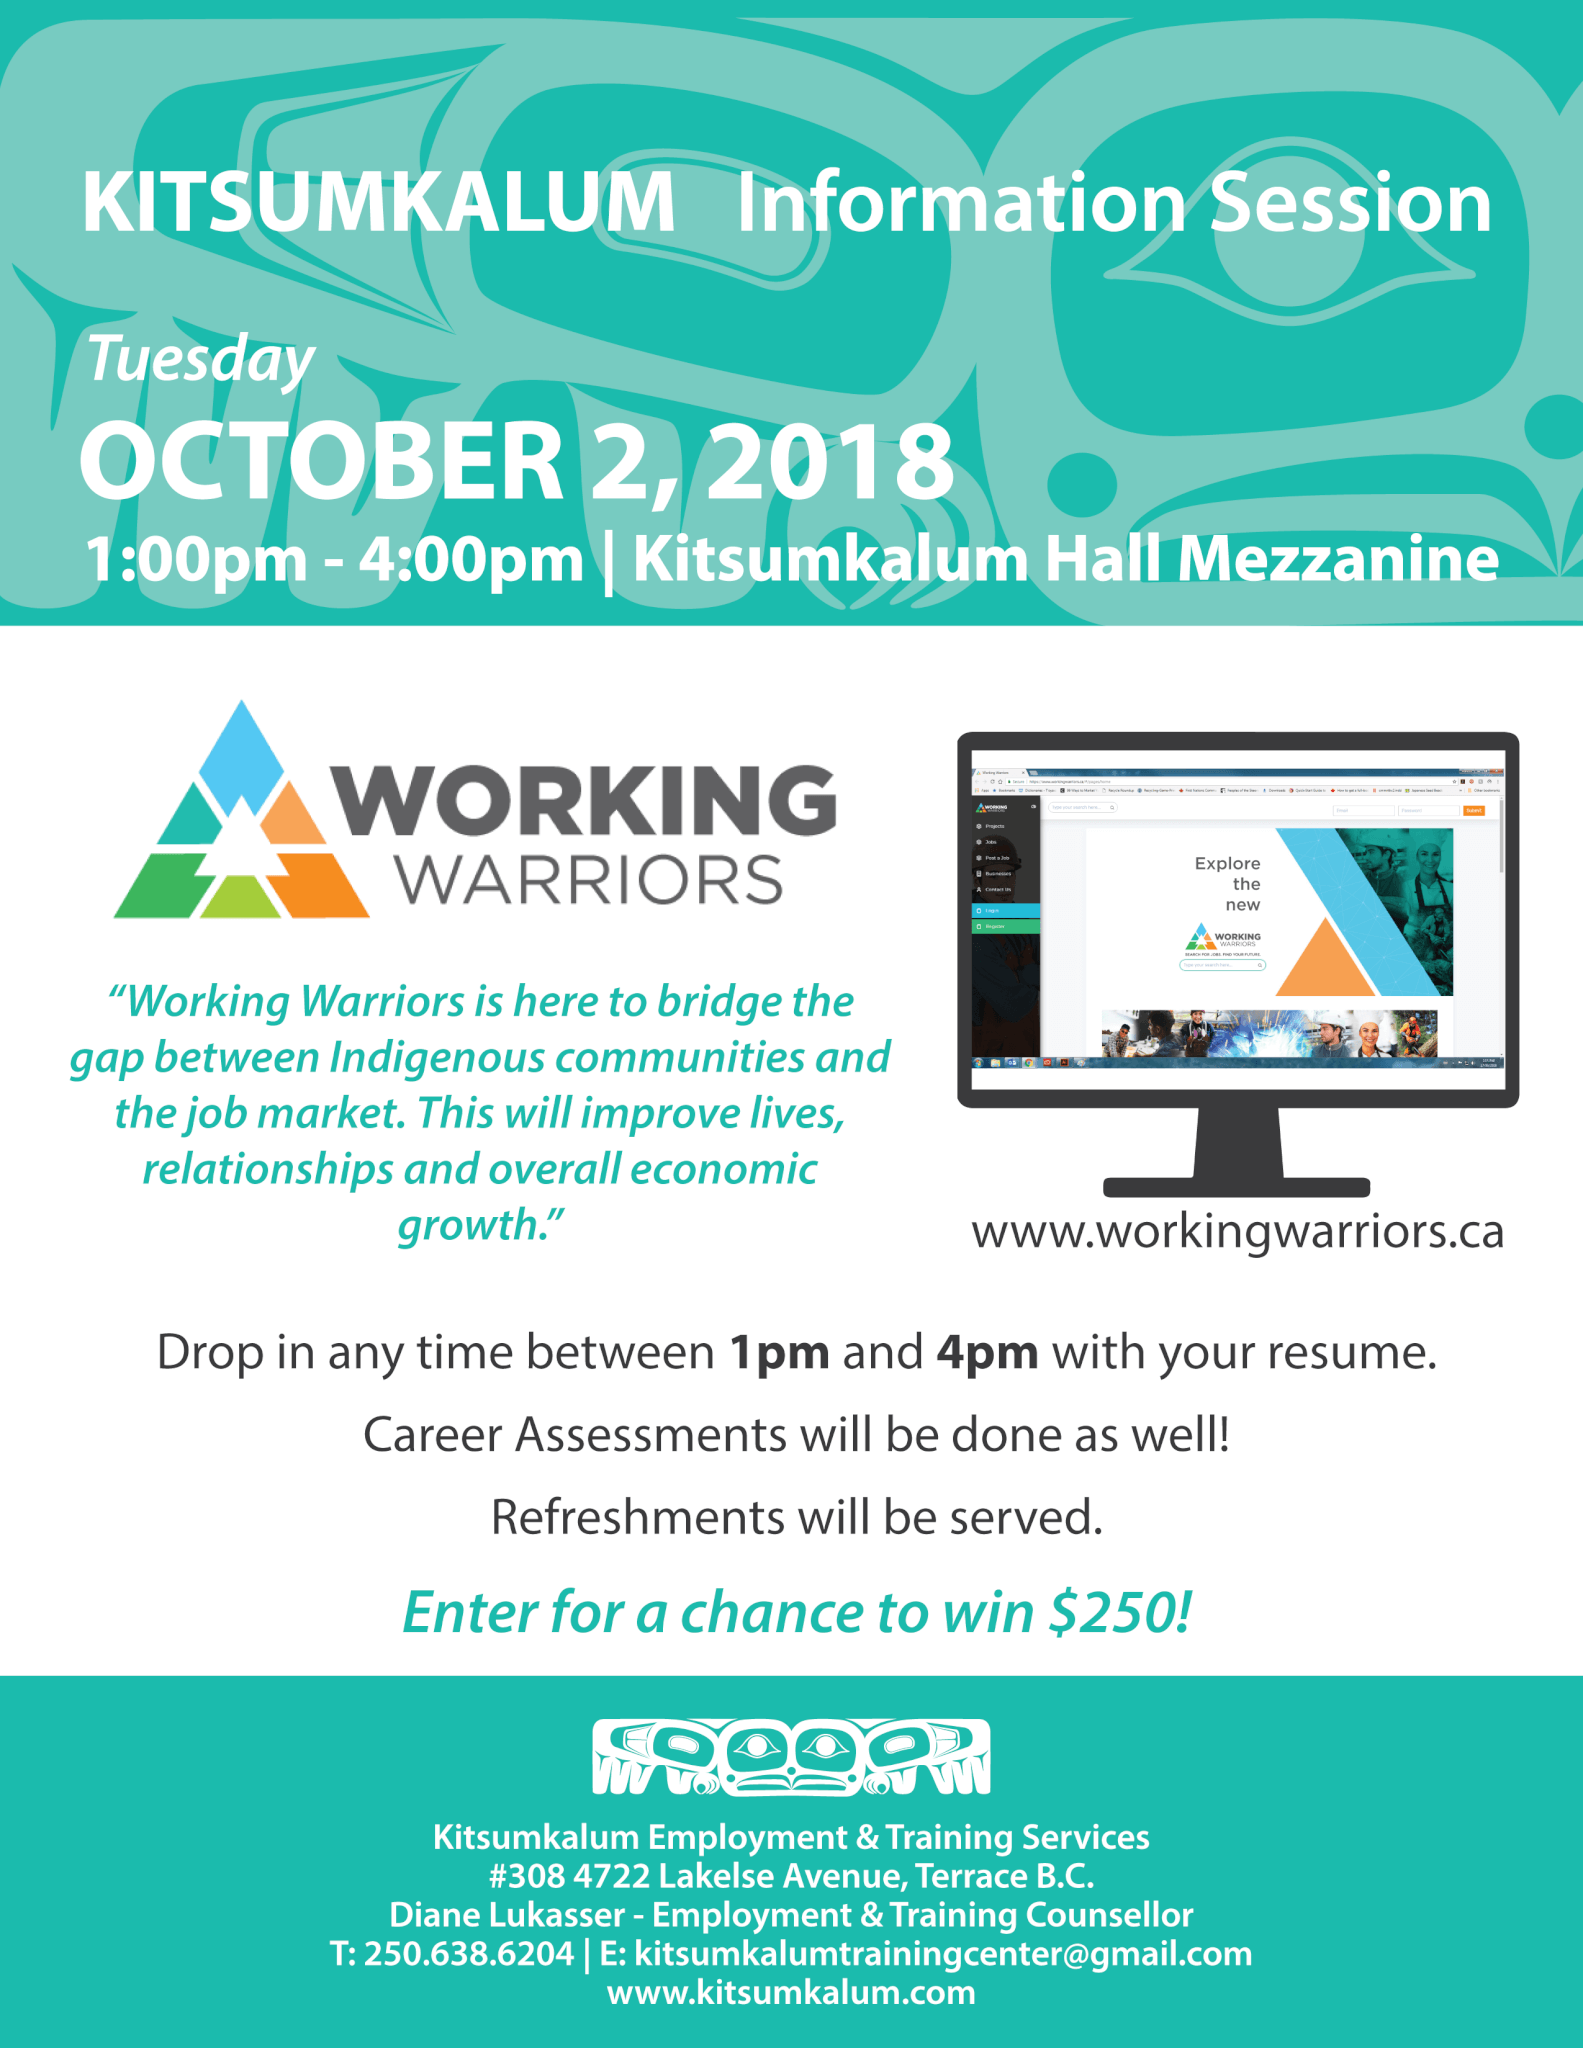 Working Warriors Information Session